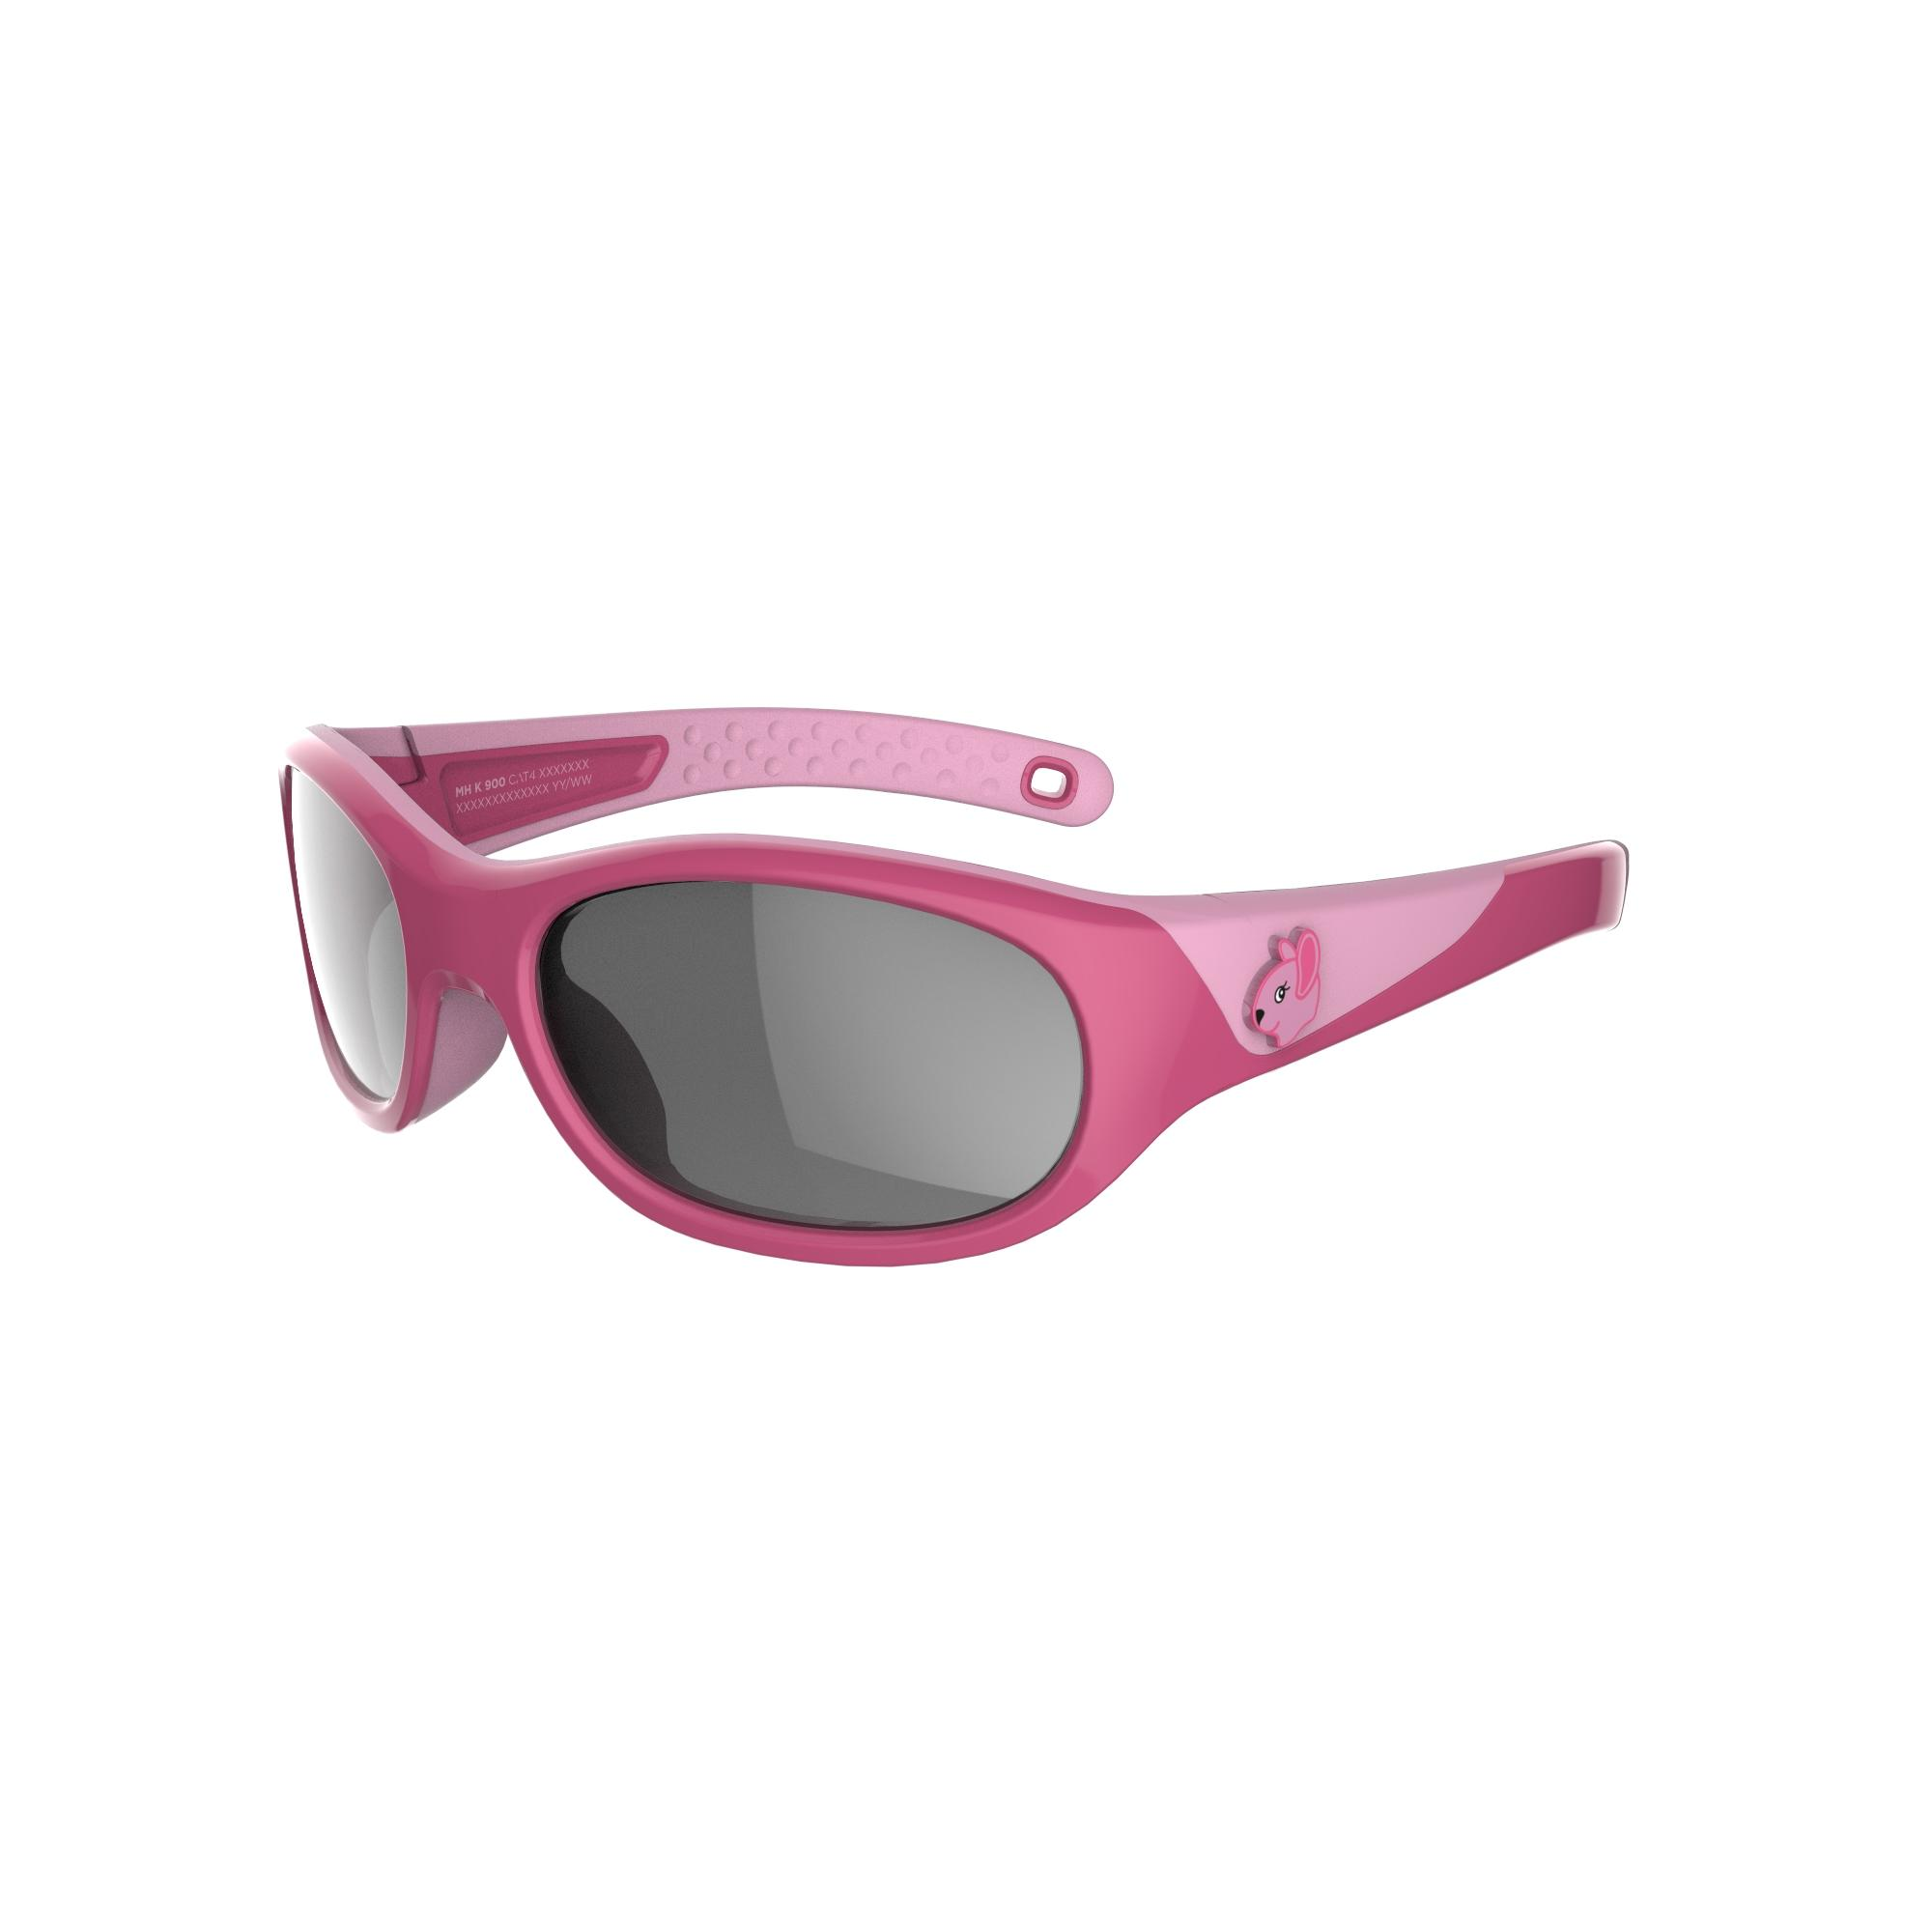 MH K 140 Children Category 4 Hiking Sunglasses Ages 5-6 - Pink